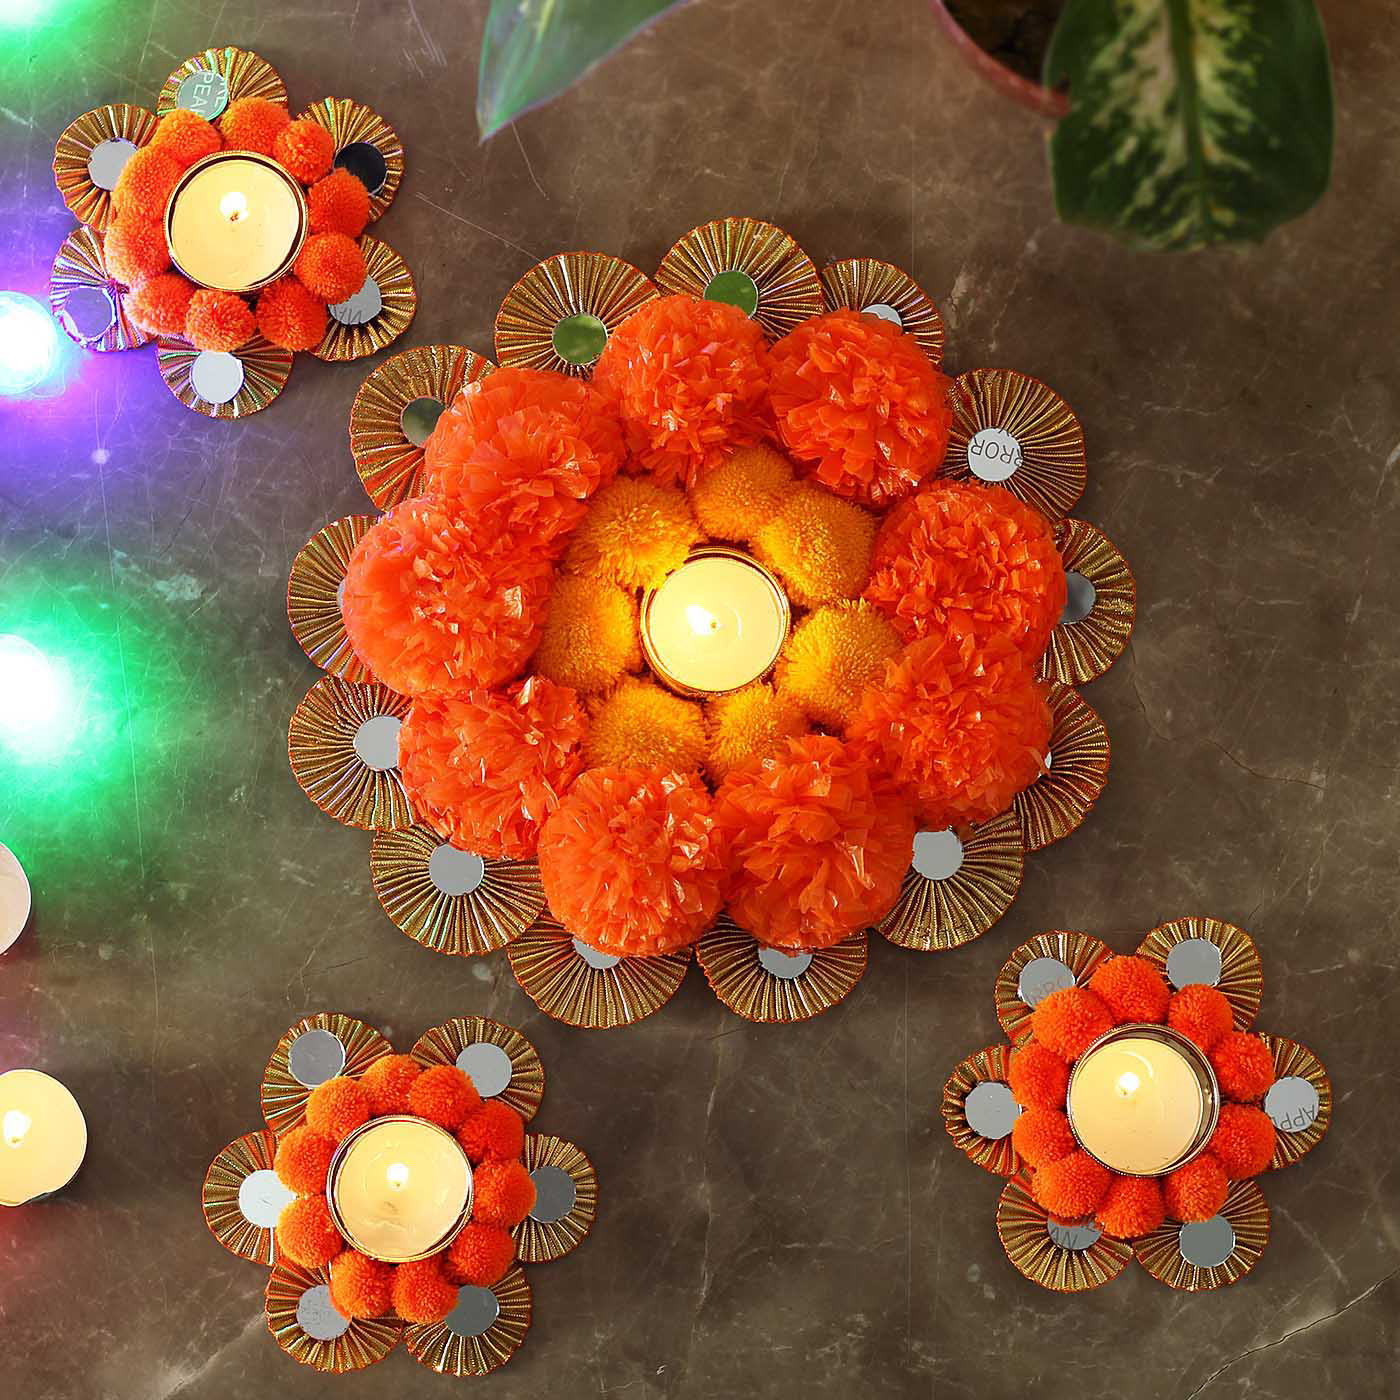 11 Easy Rangoli Designs for Diwali 2020 for Home